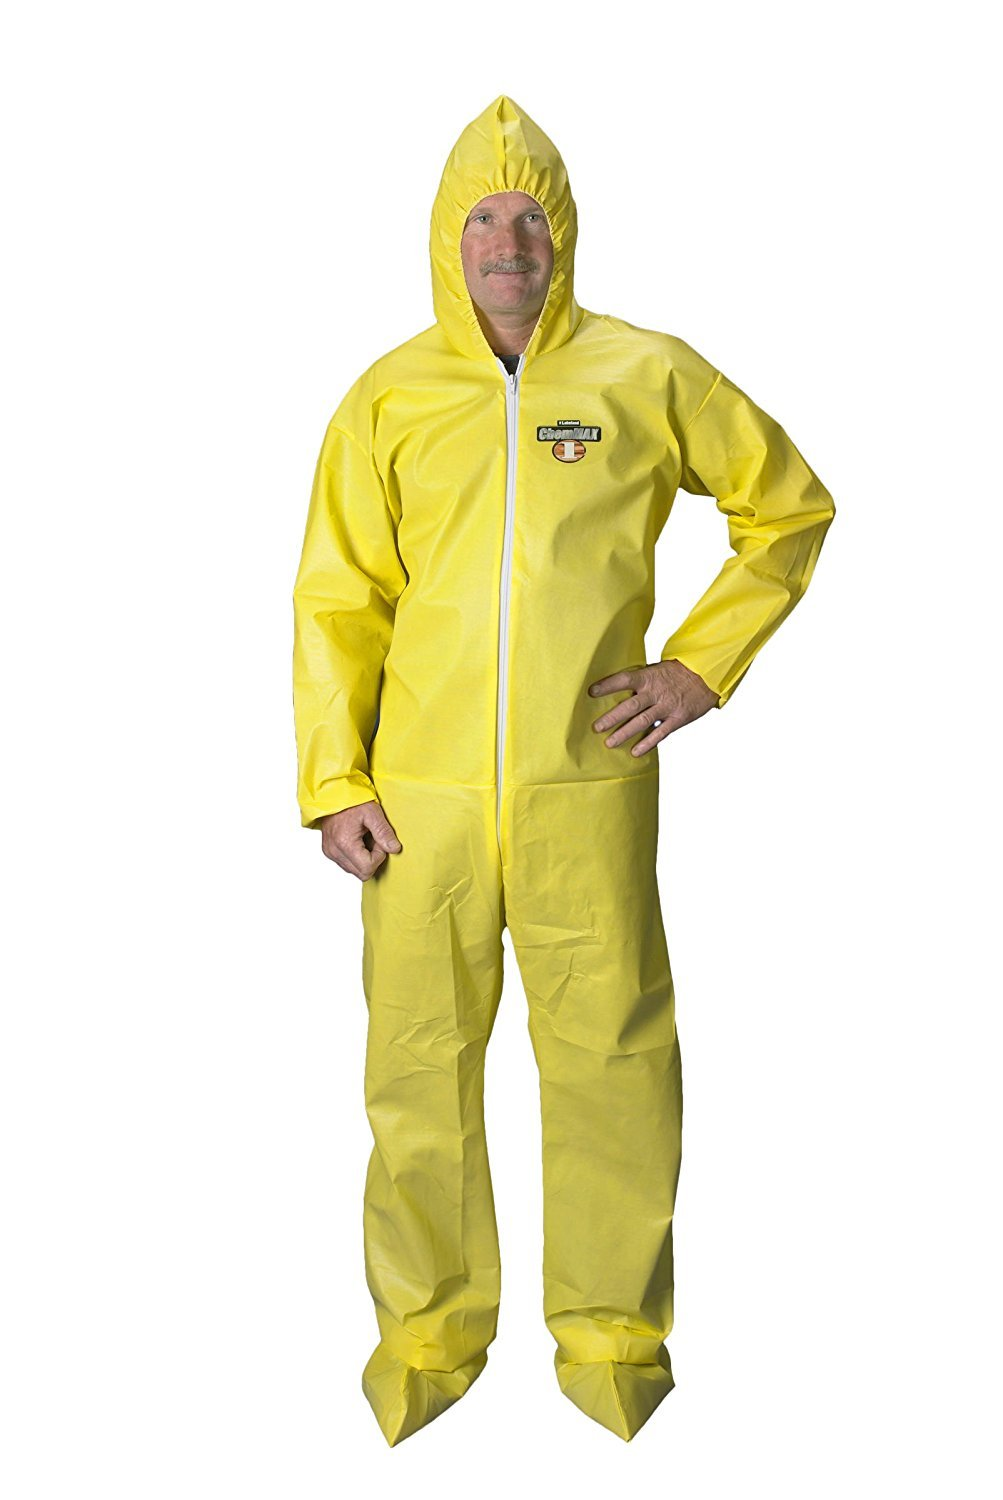 (Pack of 3) Lakeland Hooded Coverall Chemical Protection Suit - ChemMax 1 Serged Seam Coverall with Hood and Boots, Elastic Cuff, Yellow (2XL)